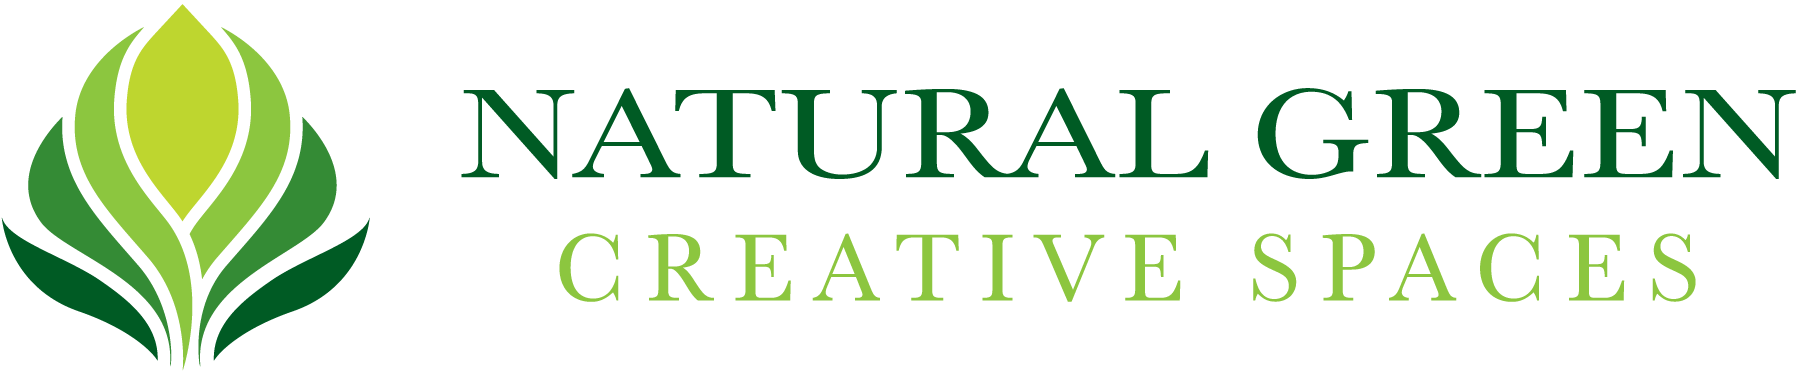 Natural Green Creative Spaces